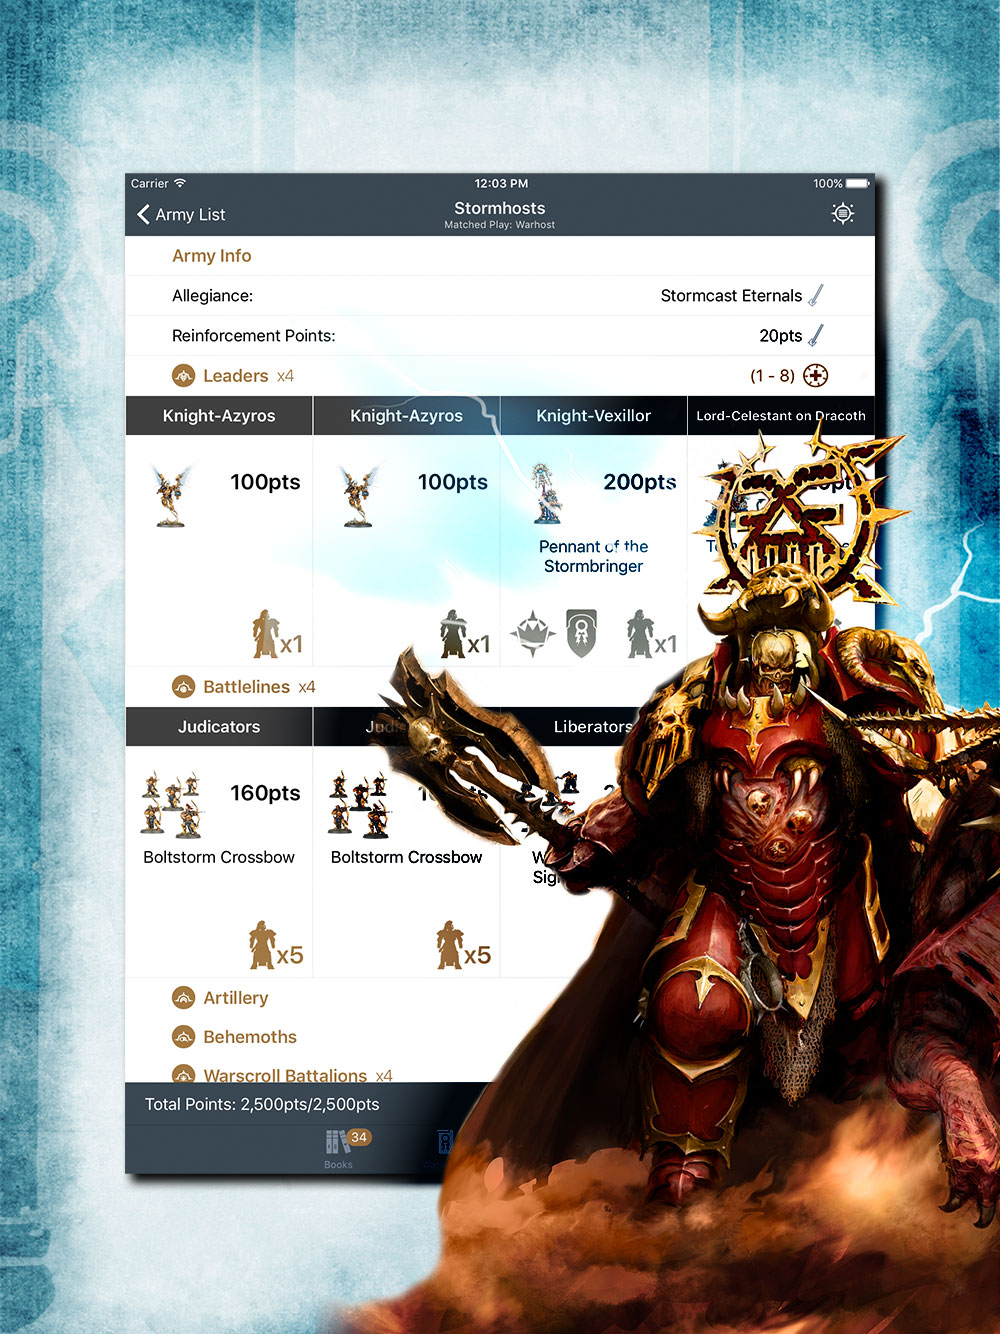 Your Warhammer Age of Sigmar App: Updated! - Warhammer Community